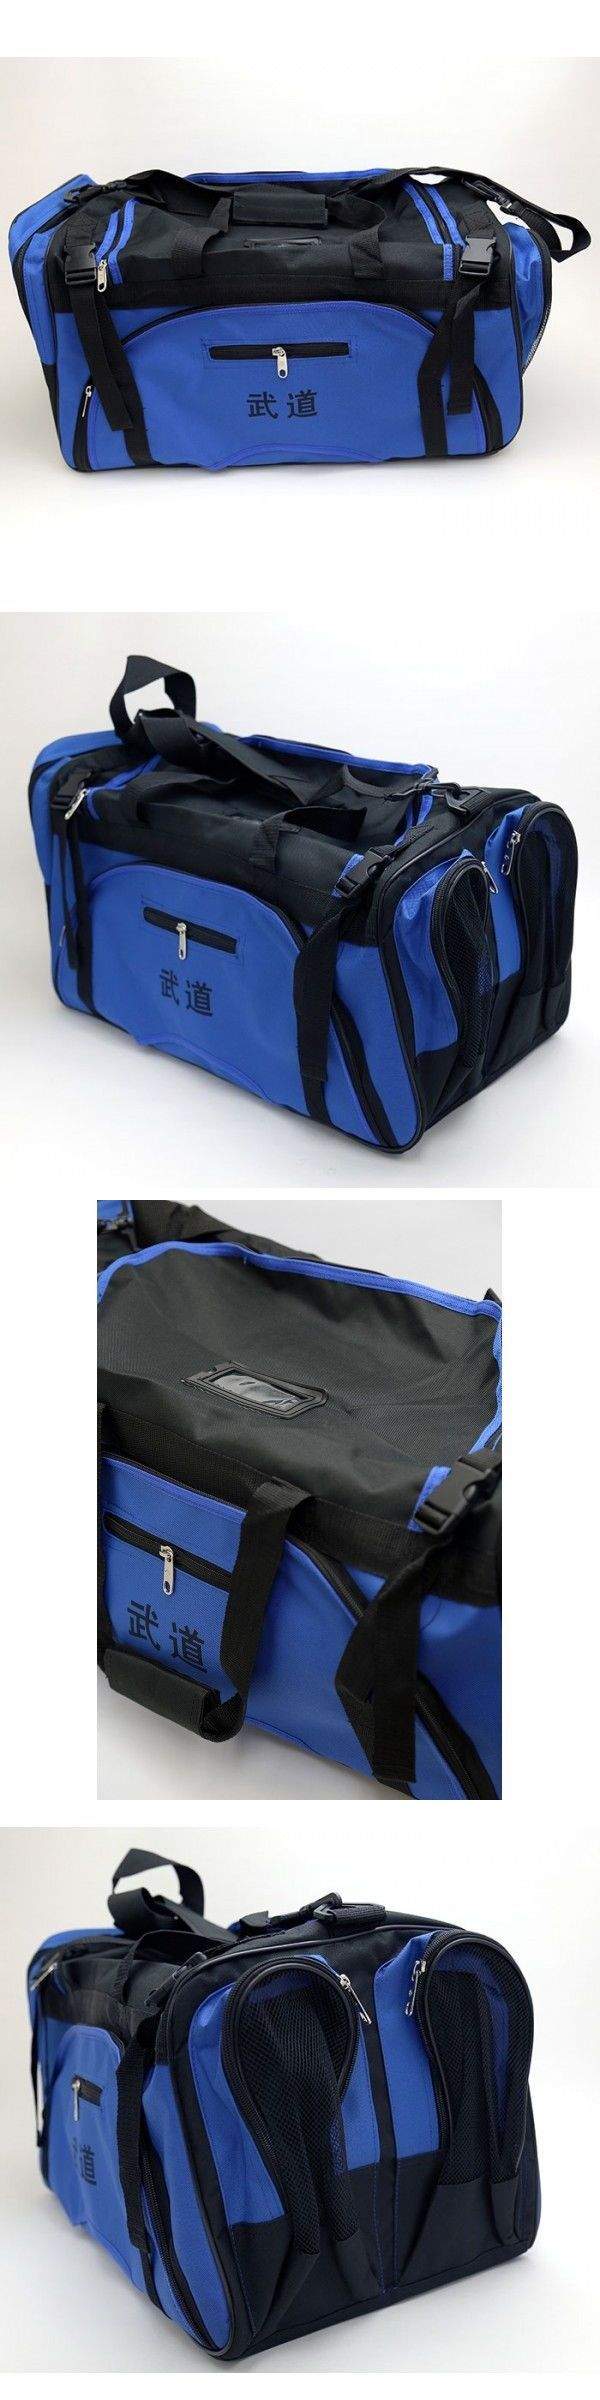 Other Combat Sport Clothing 73988: Taekwondo, Martial Arts, Mma, Karate, Sparring Gear Equipment Bags -> BUY IT NOW ONLY: $39.99 on eBay!